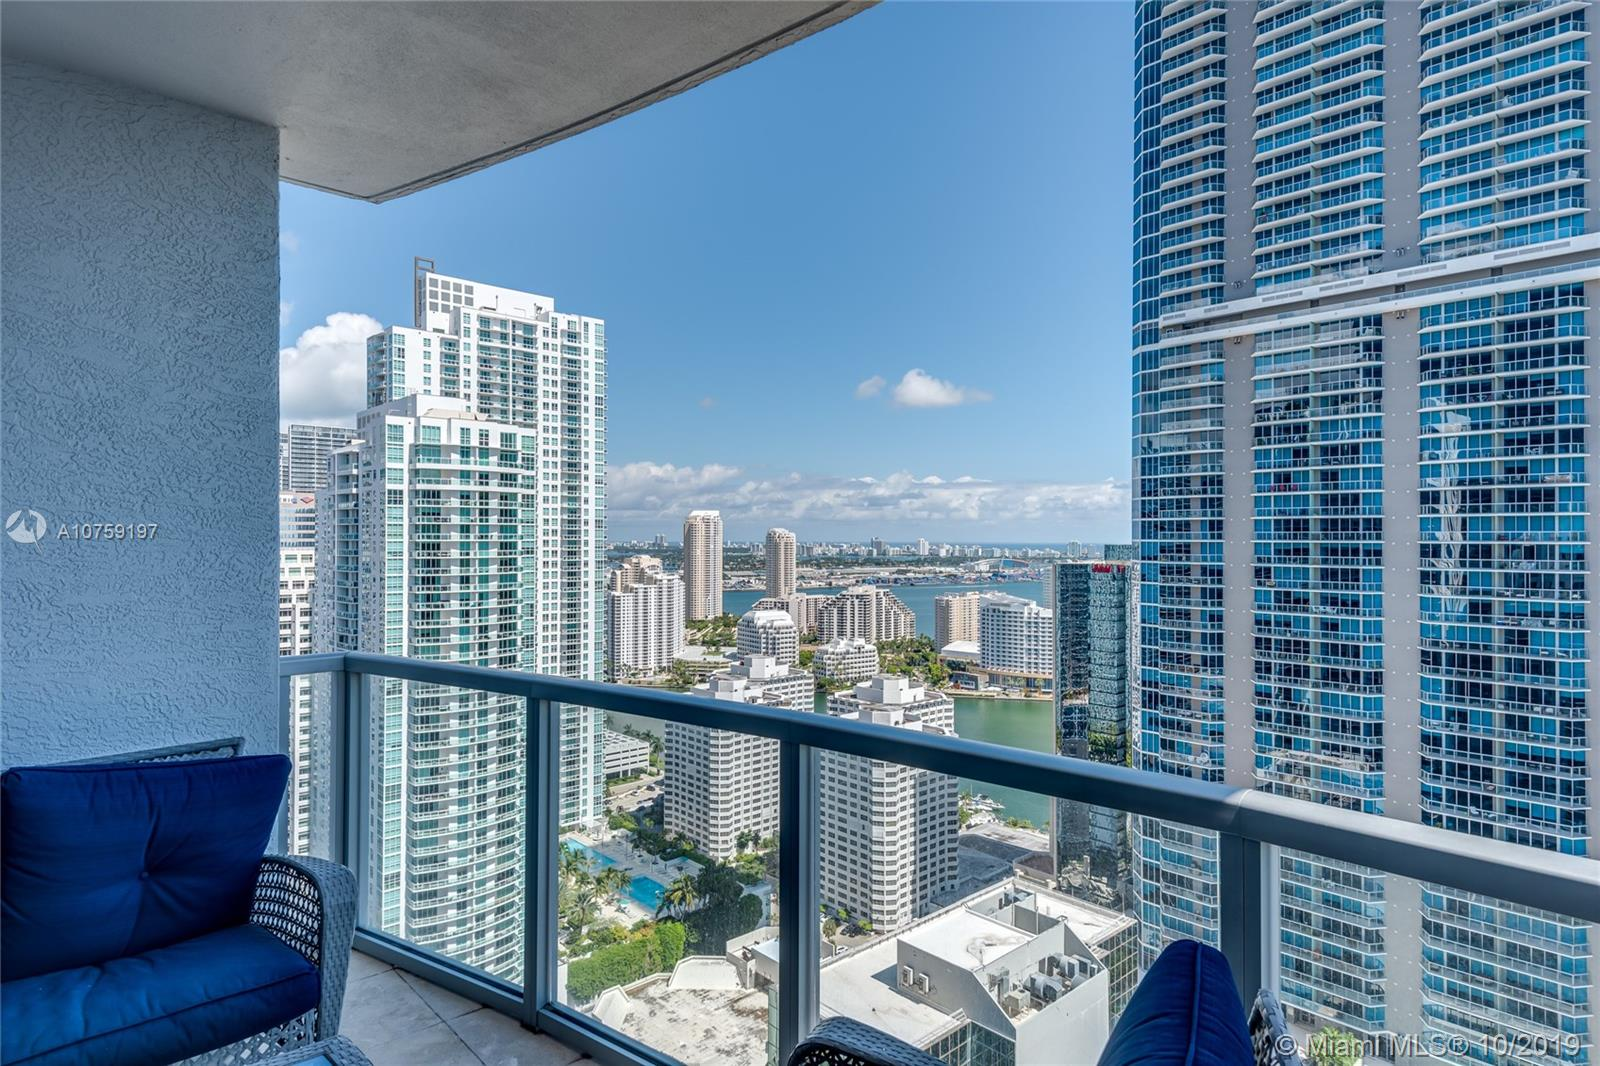 BRICKELL LIVING! Skyline & partial bay views await you in the heart of the Brickell area. Walk to all of the restaurants, pubs, entertainment venues, gourmet shops & stores in the area. Enjoy building amenities that include an oversized pool deck, fitness center, billiards room, golf simulator, 24-hour concierge & 2 on-site casual restaurants. Pet-friendly with 24hr valet. Unit features wood & marble floors, kitchen with glass tile backsplash & marble countertops, interior washer & dryer plus an exterior balcony facing east towards the bay.